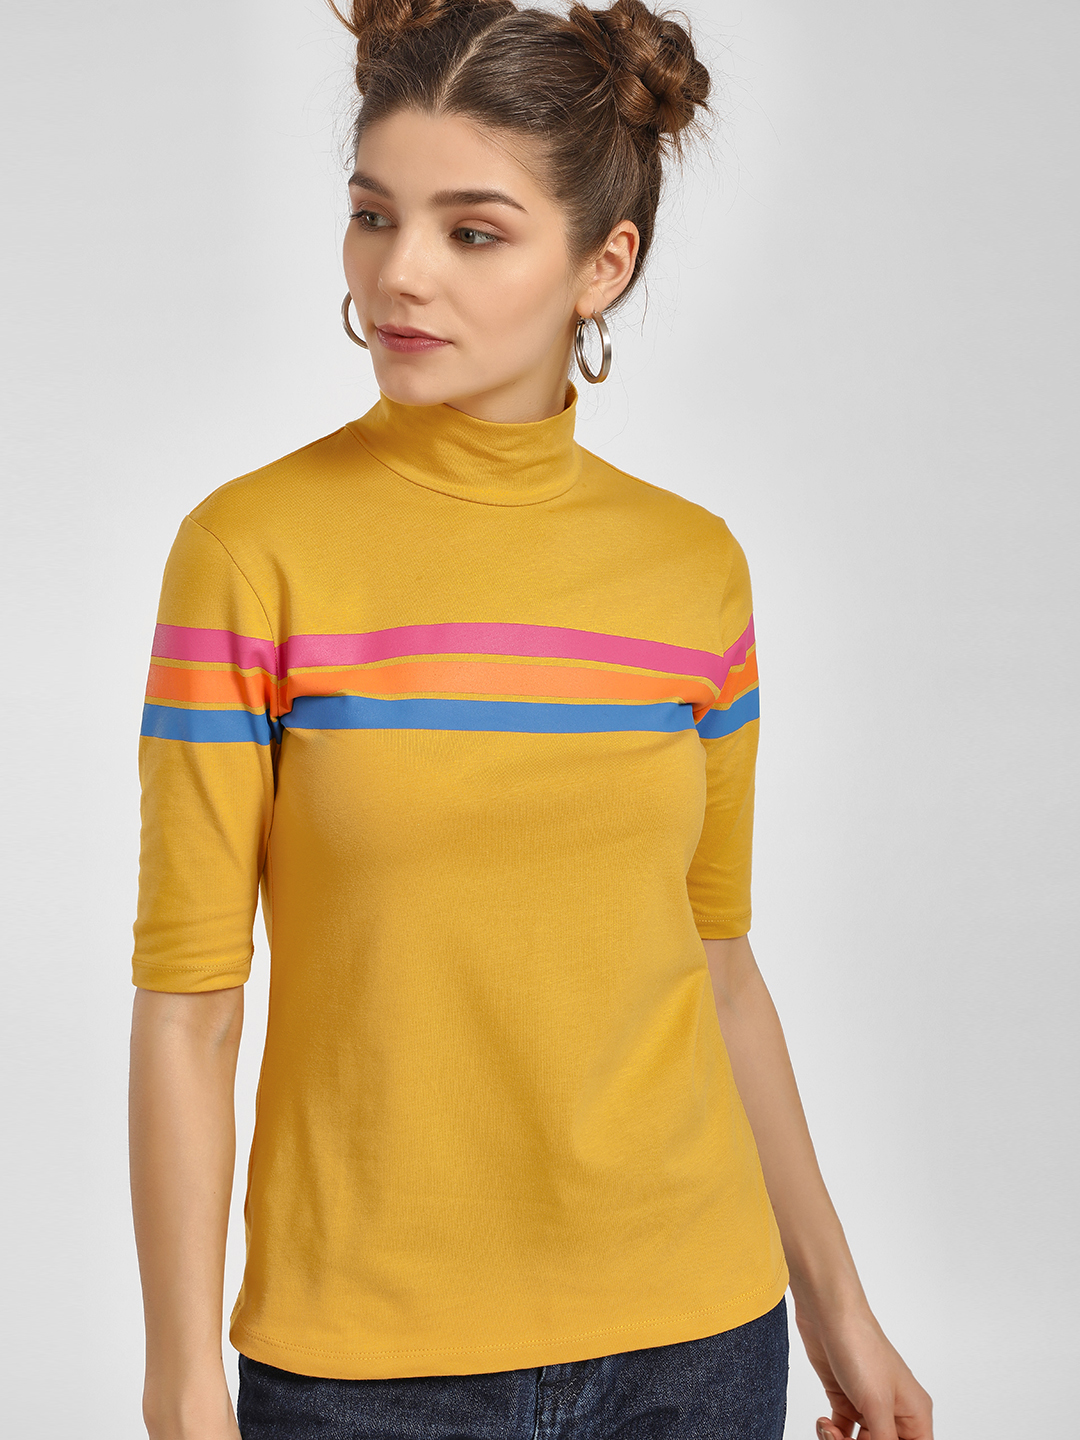 Beyond Clouds Yellow Stripe Cut-Out Back Turtleneck T-Shirt 1